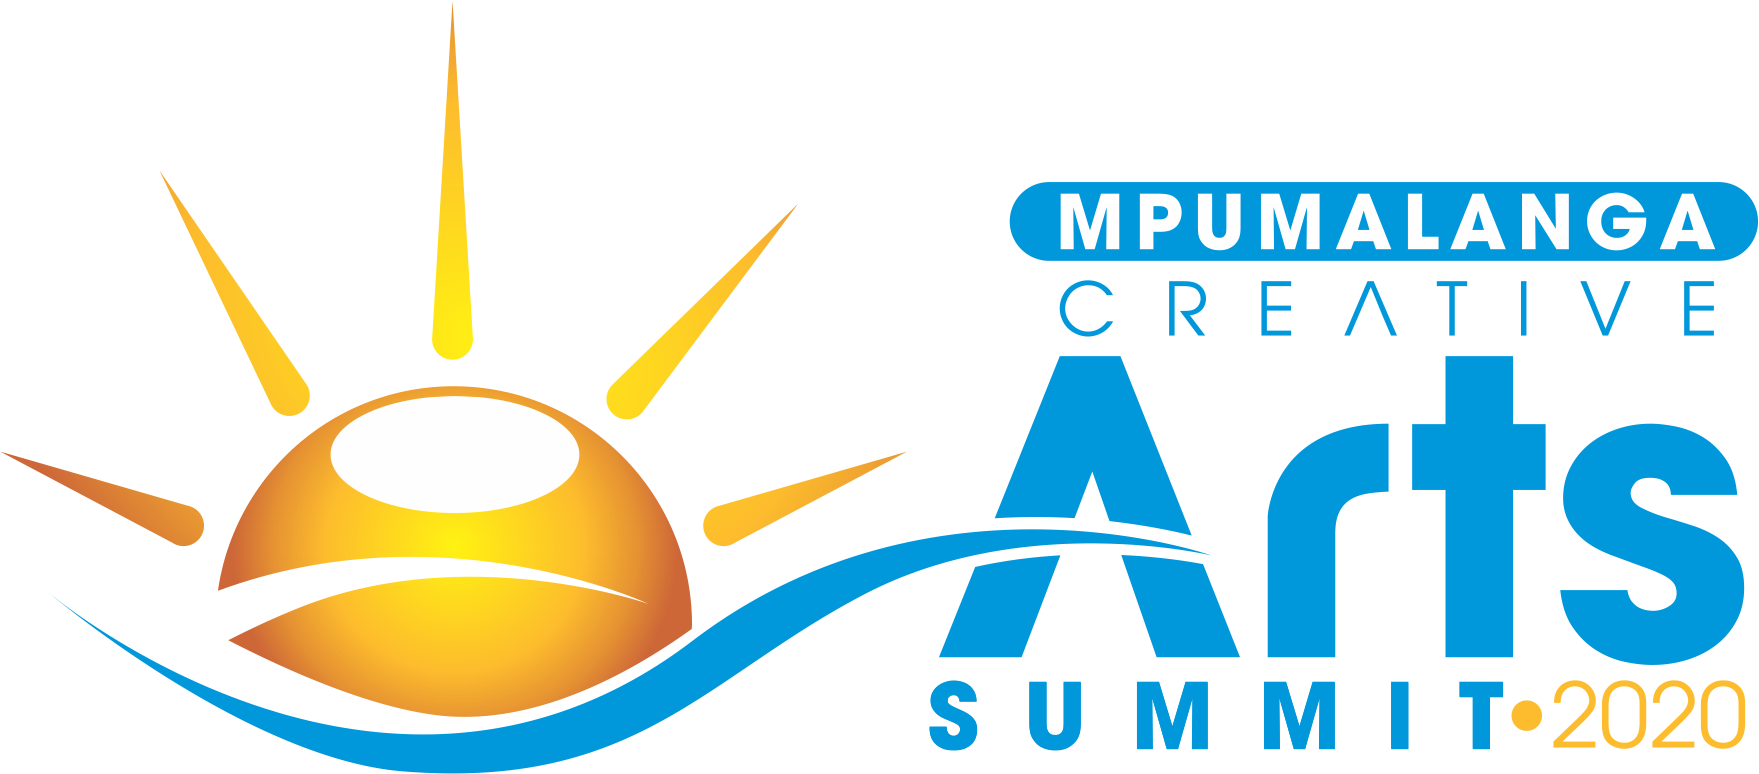 Mpumalanga Creative Arts Summit